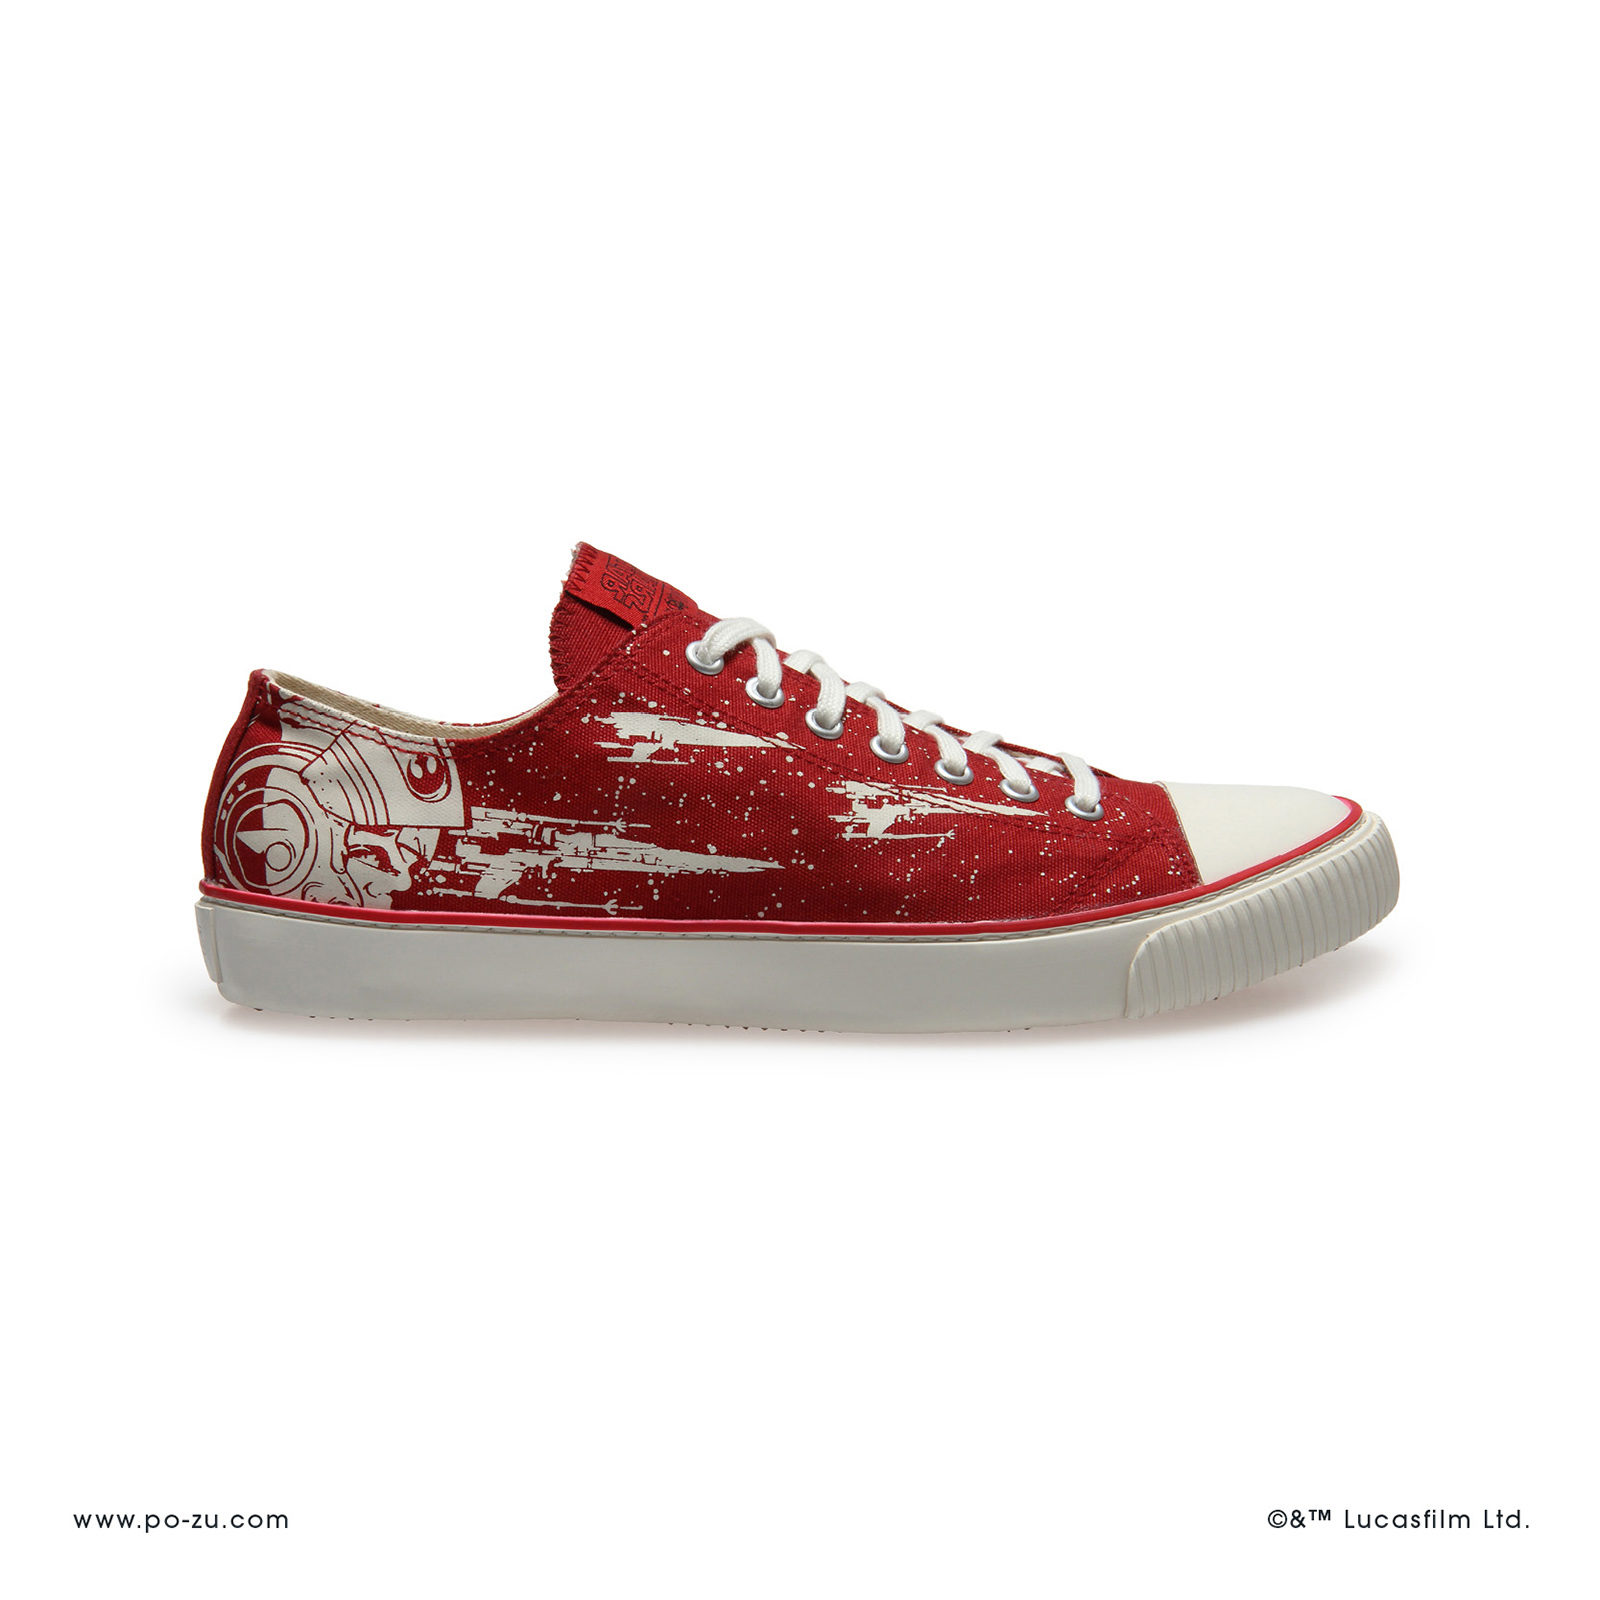 Po-Zu x Star Wars Red X-Wing Sneakers